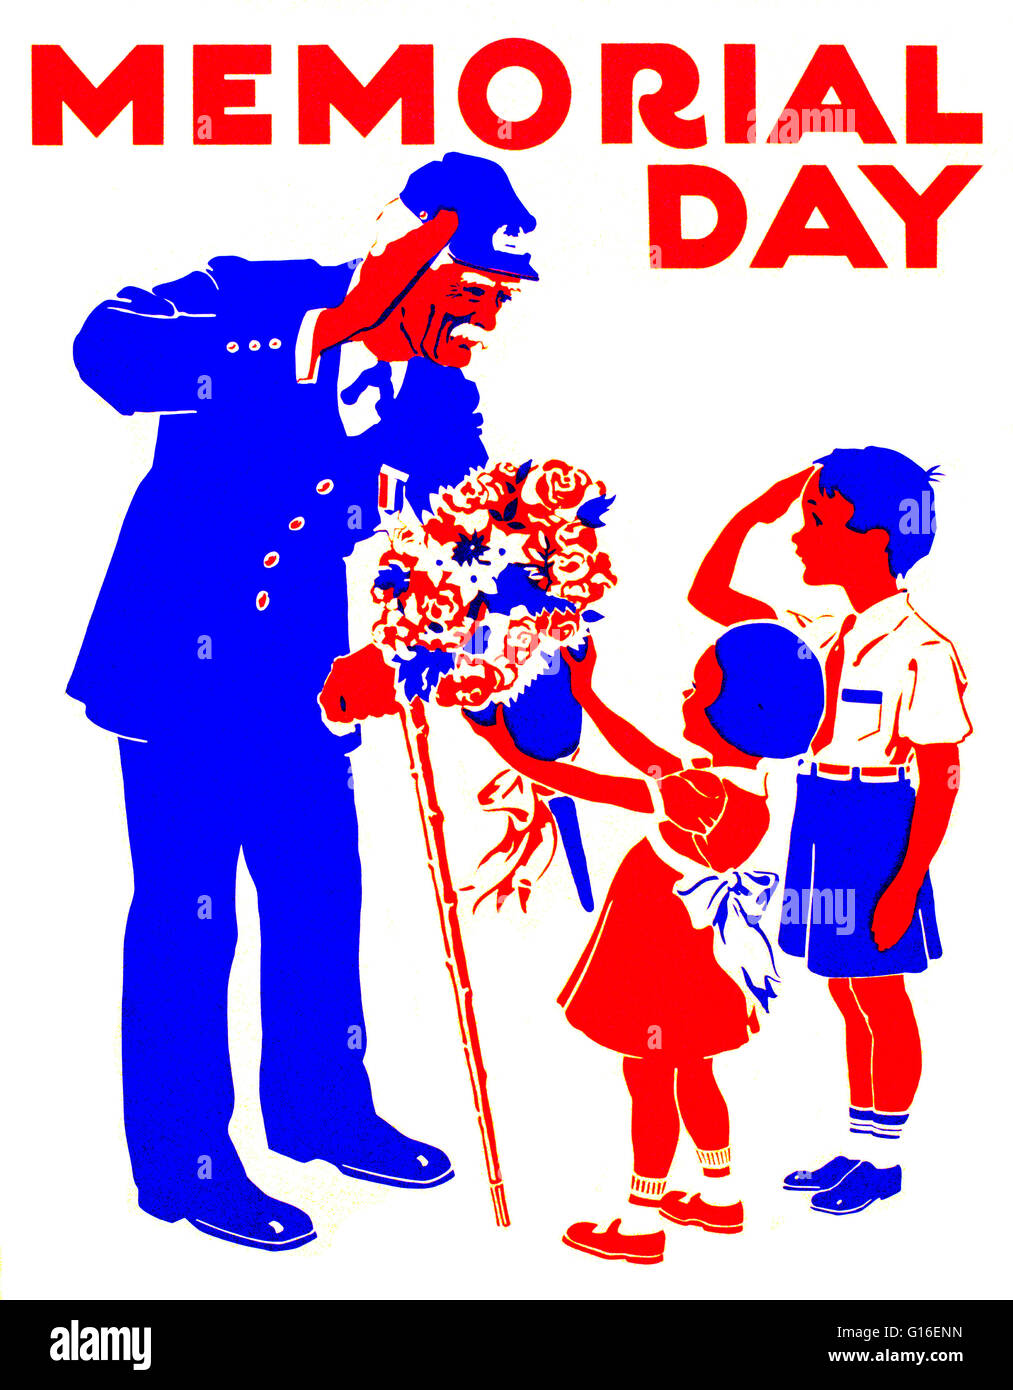 Entitled: 'Memorial Day'. Poster honoring veterans, showing a boy and an old soldier saluting each other, - Stock Image